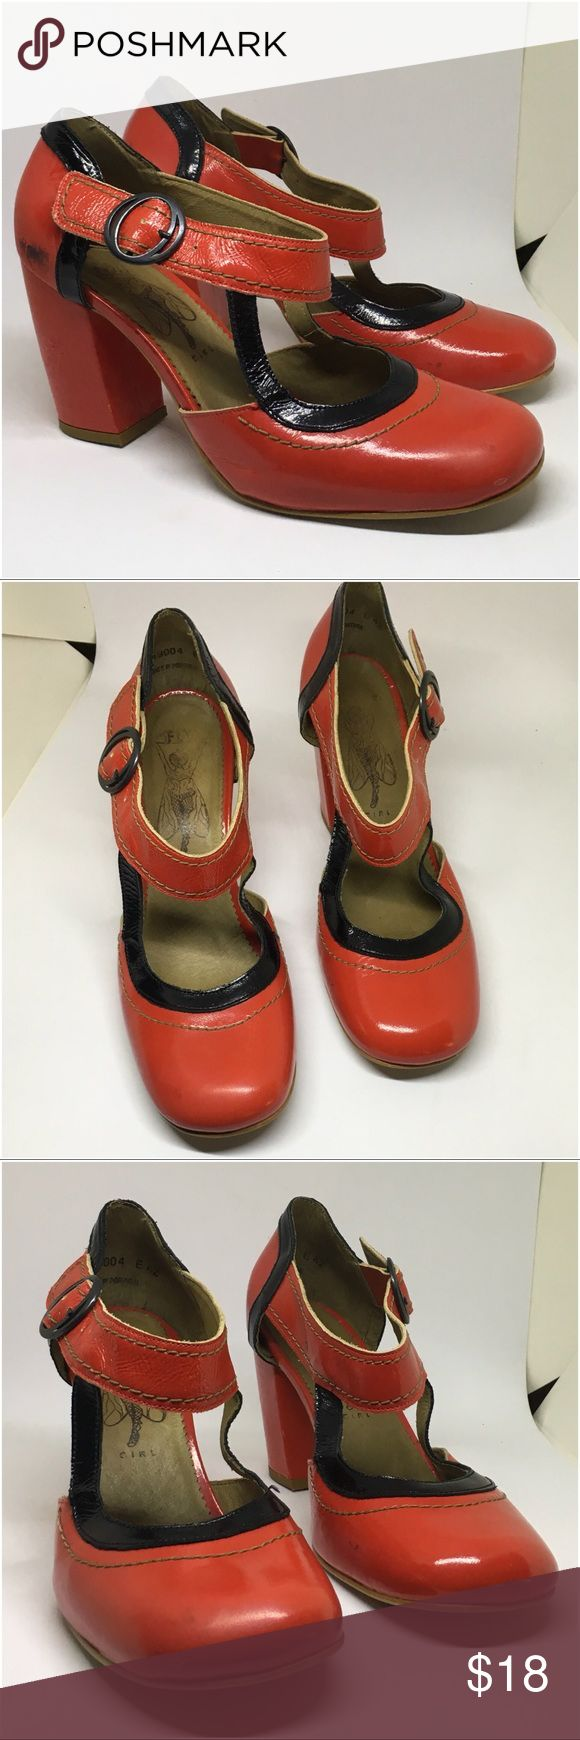 """FLY London red patent shoes size 11 (42) Vintage Inspired FLY LONDON red patent shoes with black details.  They are patent leather. Made in Portugal.  They are not in perfect condition and have a few scuffs that are pictured - BUT they still have ALOT of life and are super cute and unique!  length of insole - 11""""  Width at front of foot - 3.5""""  Width at back of foot - 2.5"""" Heel Height - 3.5"""" Fly London Shoes"""